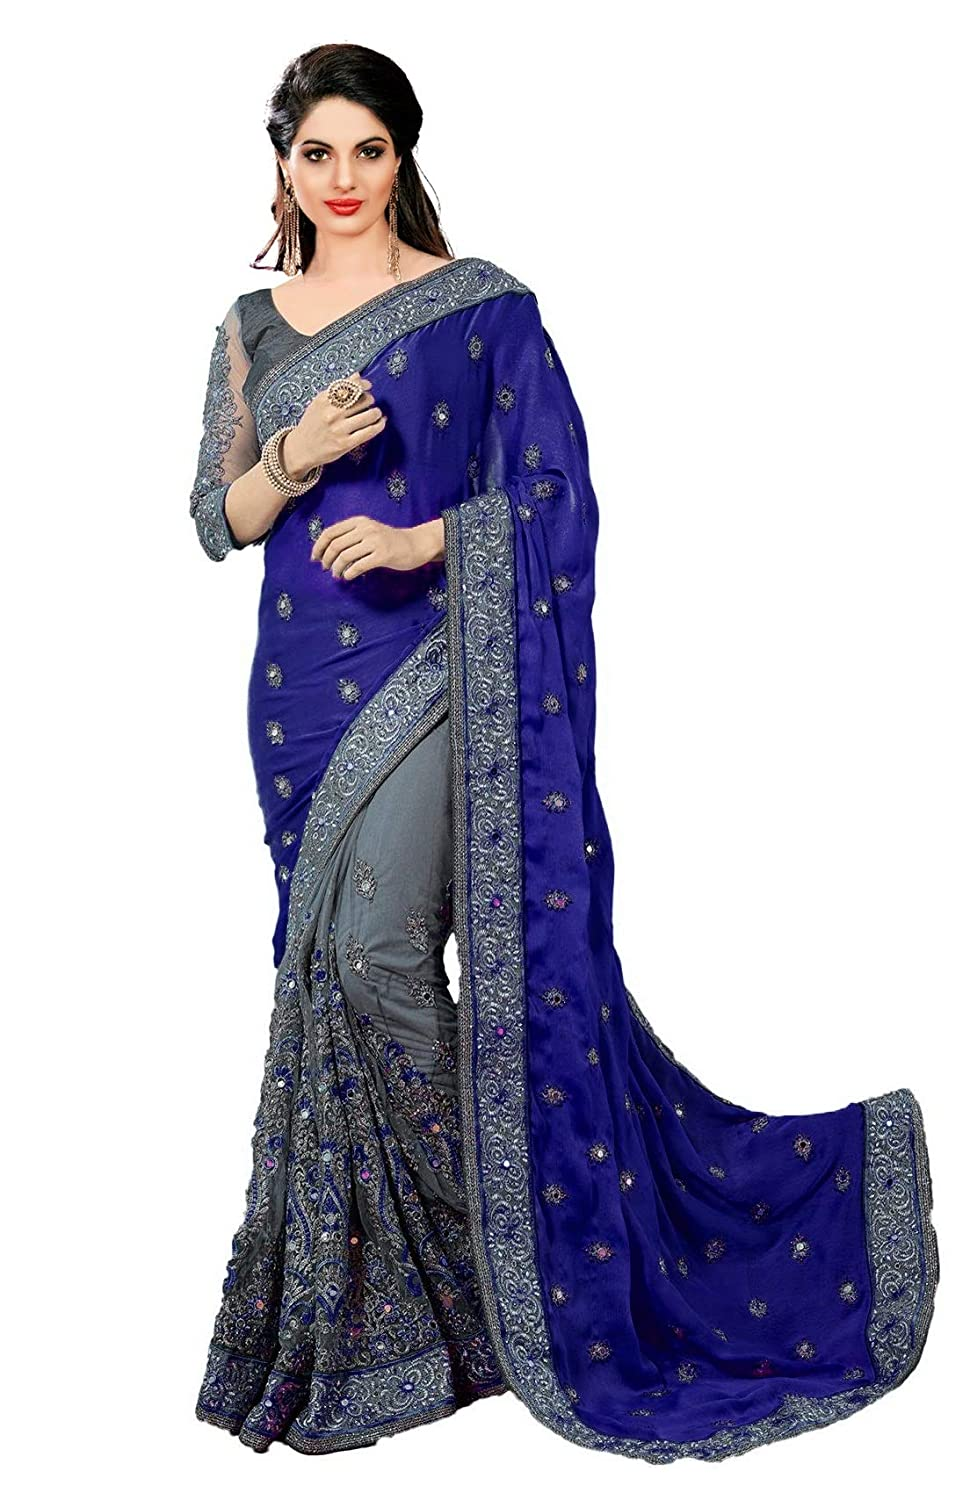 Panash Trends Women's Heavy Embroidery Work Satin Silk & Net Sarees-Black